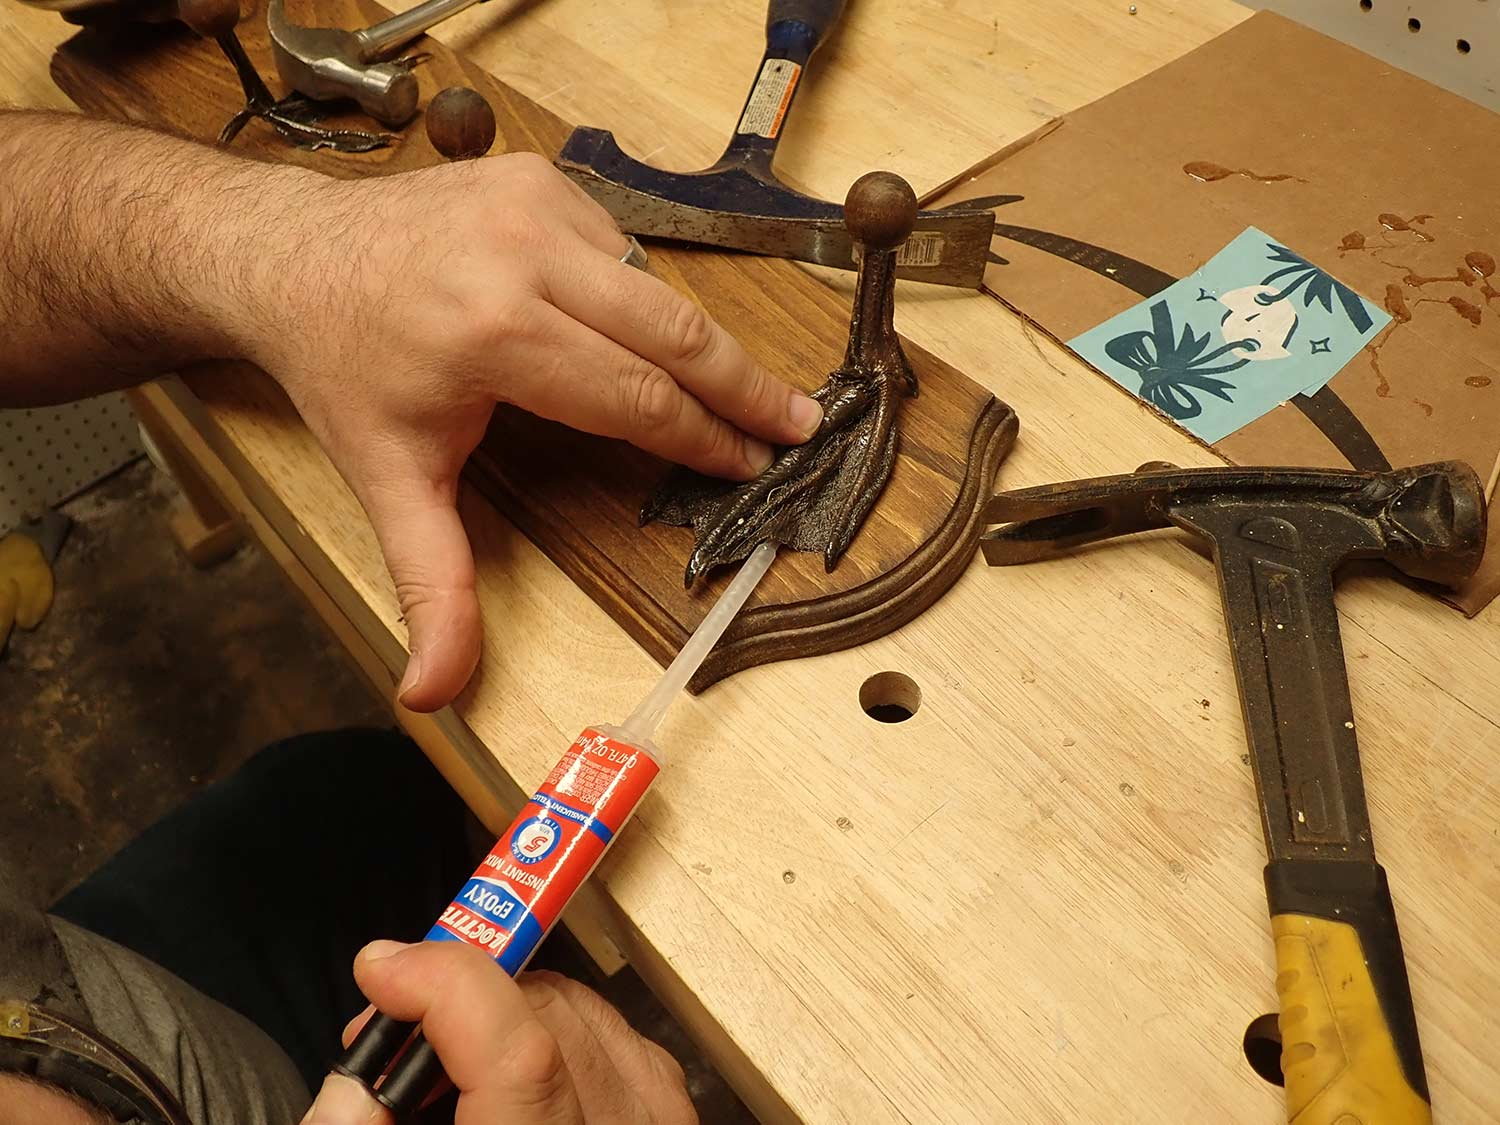 Attaching duck feet to a wall  plaque with epoxy.